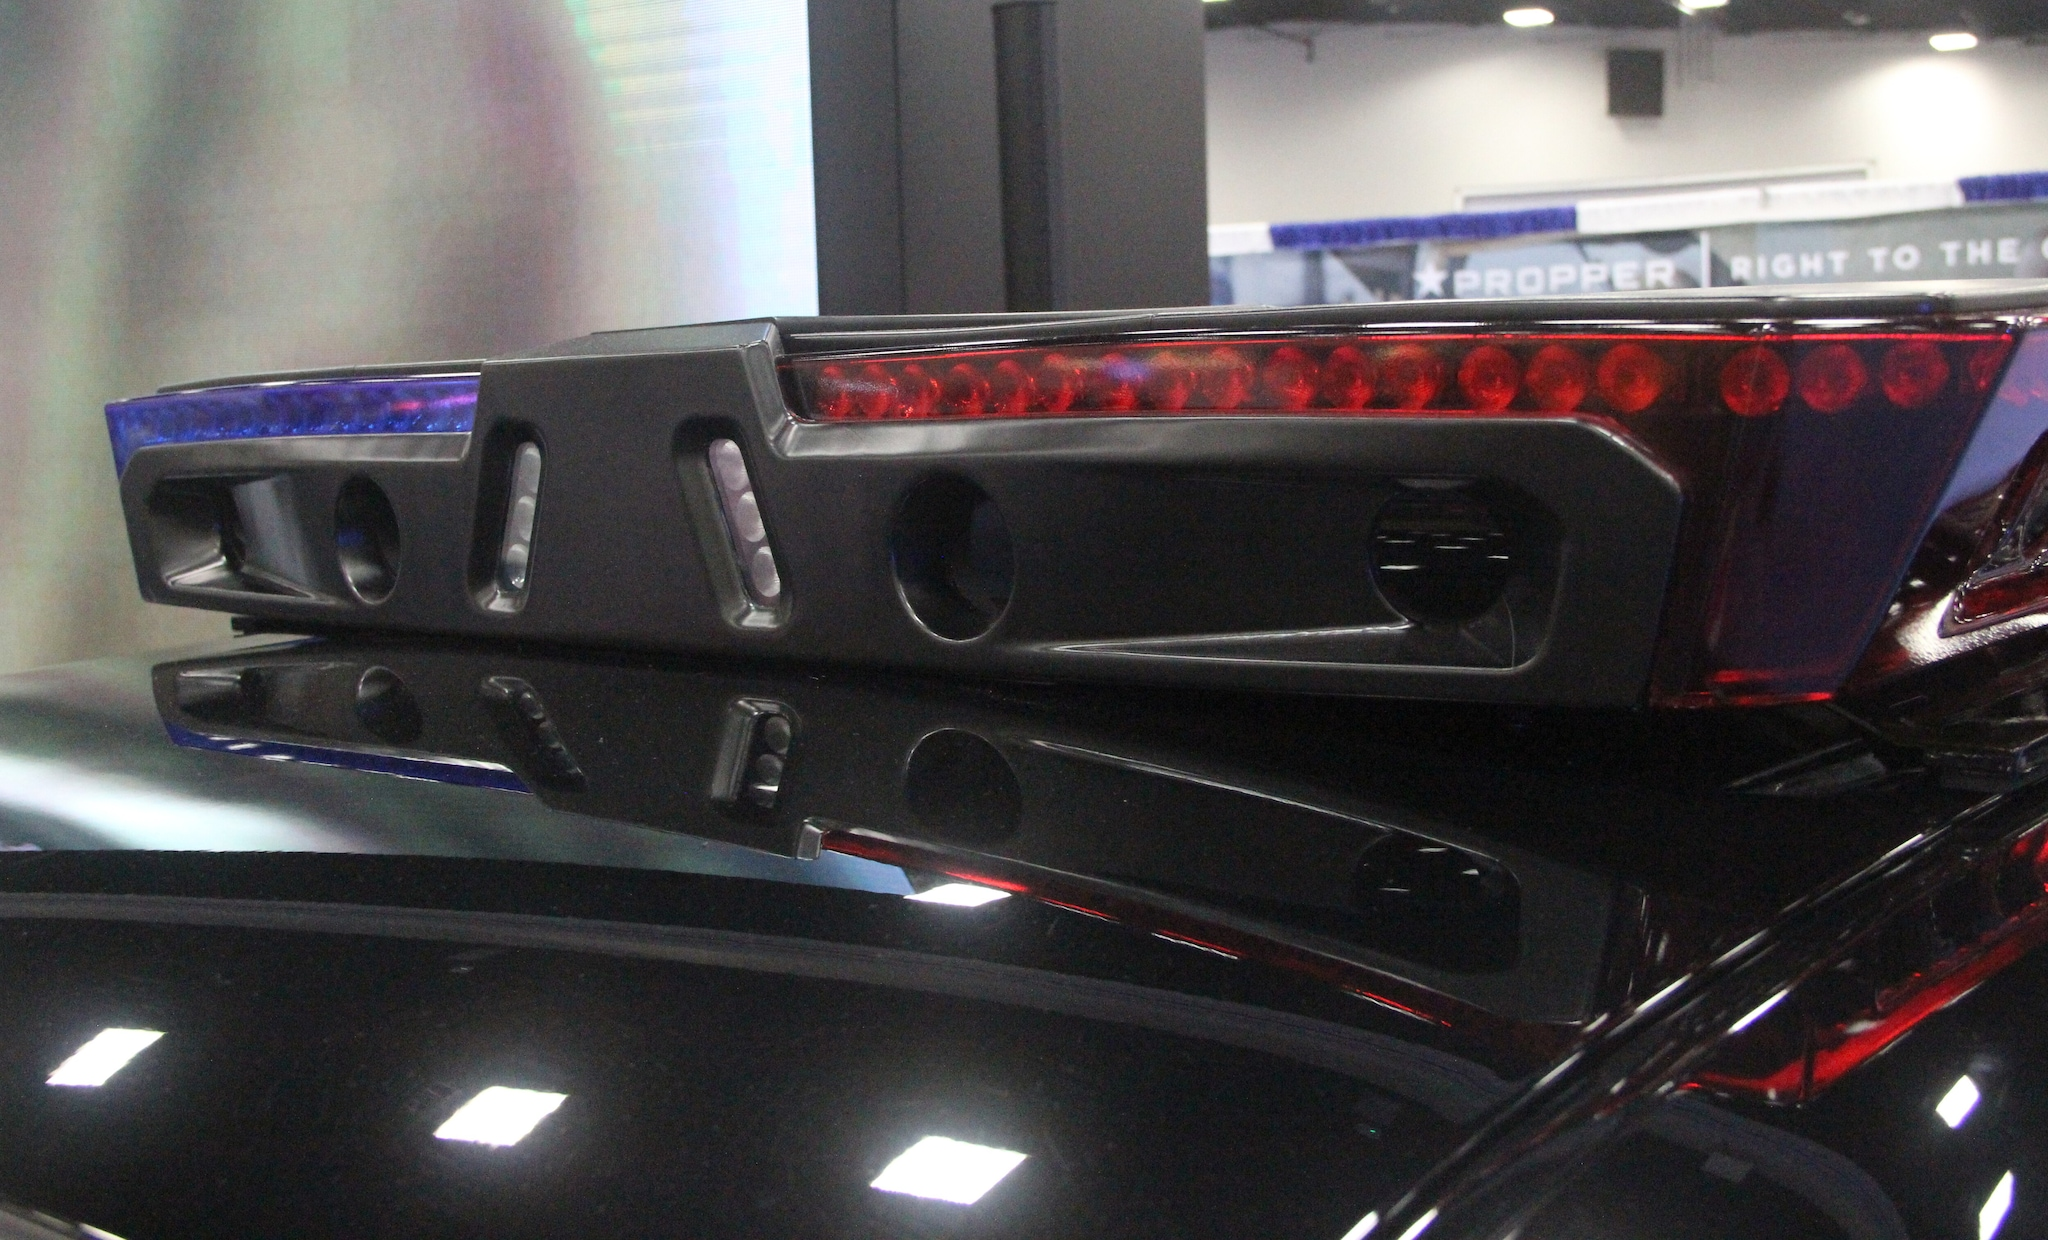 Ekin displays a smart lightbar system on a police cruiser during the National Association of Police Chiefs annual convention in San Diego Oct. 15-18, 2015. (Photo: Jared Morgan / Guns.com)